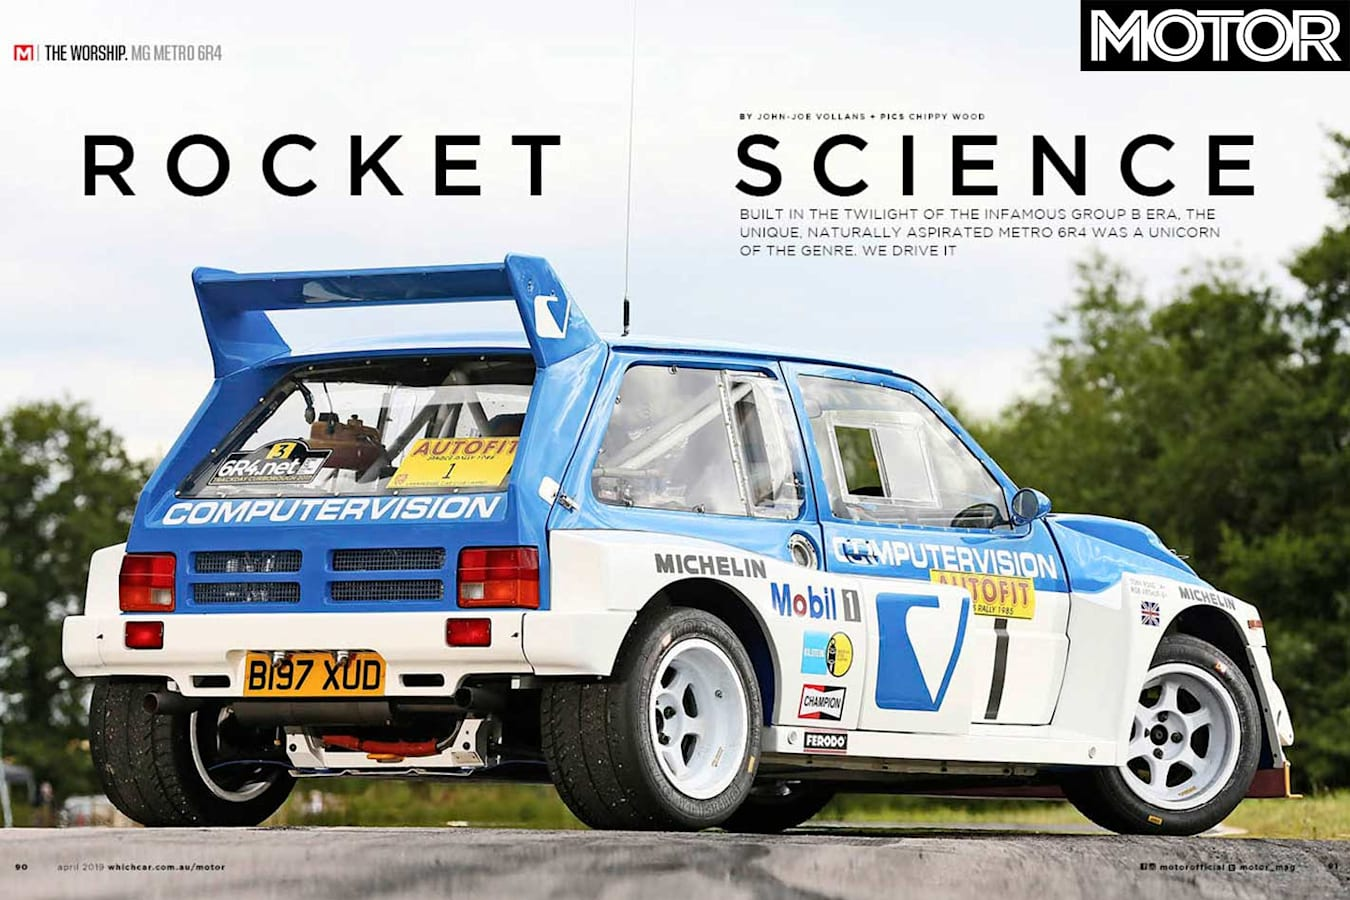 MOTOR Magazine April 2019 Issue MG Metro 6 R 4 Group B Rally Car Feature Jpg